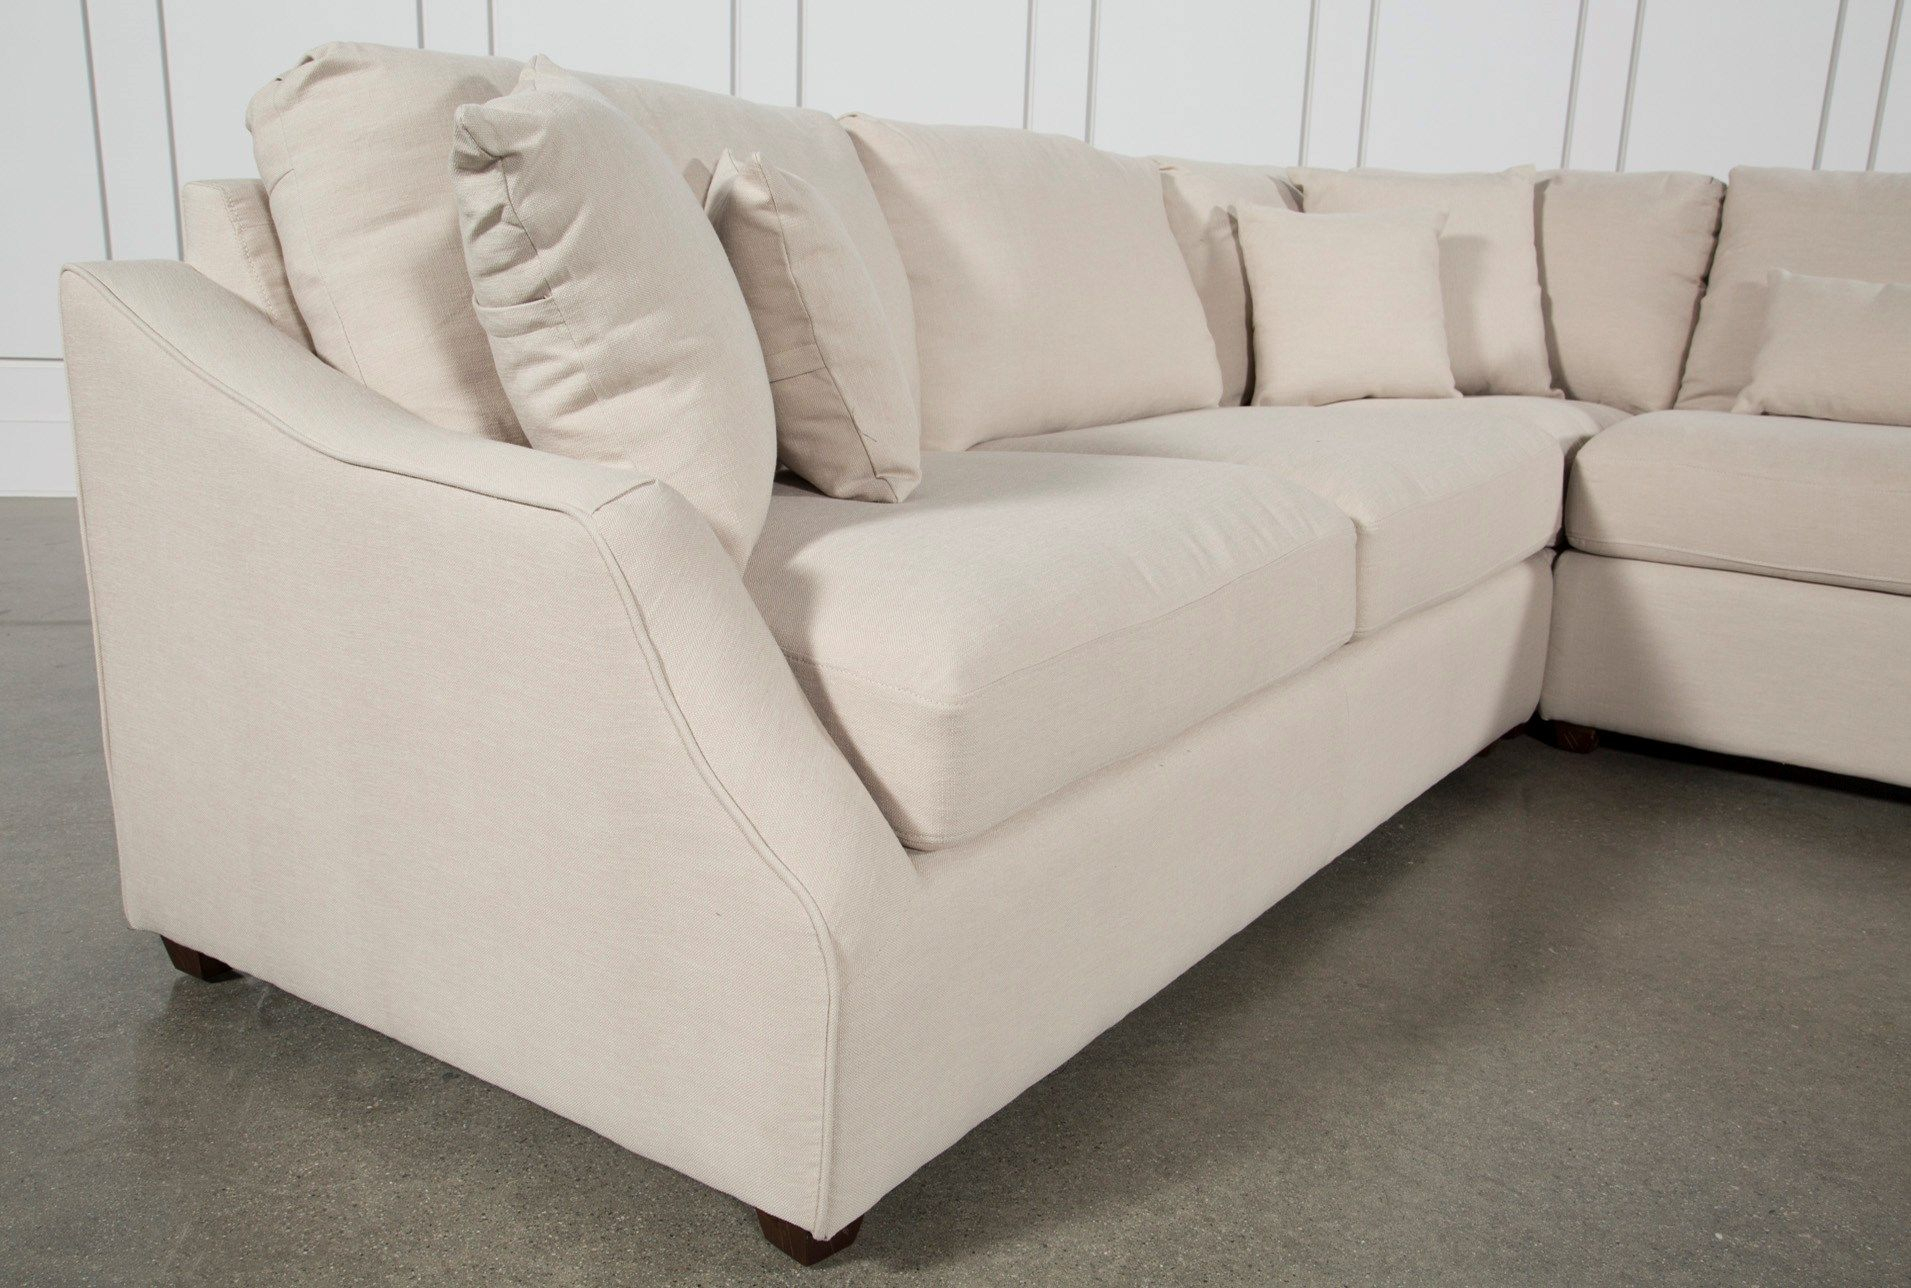 Magnolia Home Homestead 3 Piece Sectionaljoanna Gaines | Joanna Intended For Magnolia Home Homestead Sofa Chairs By Joanna Gaines (Image 8 of 20)